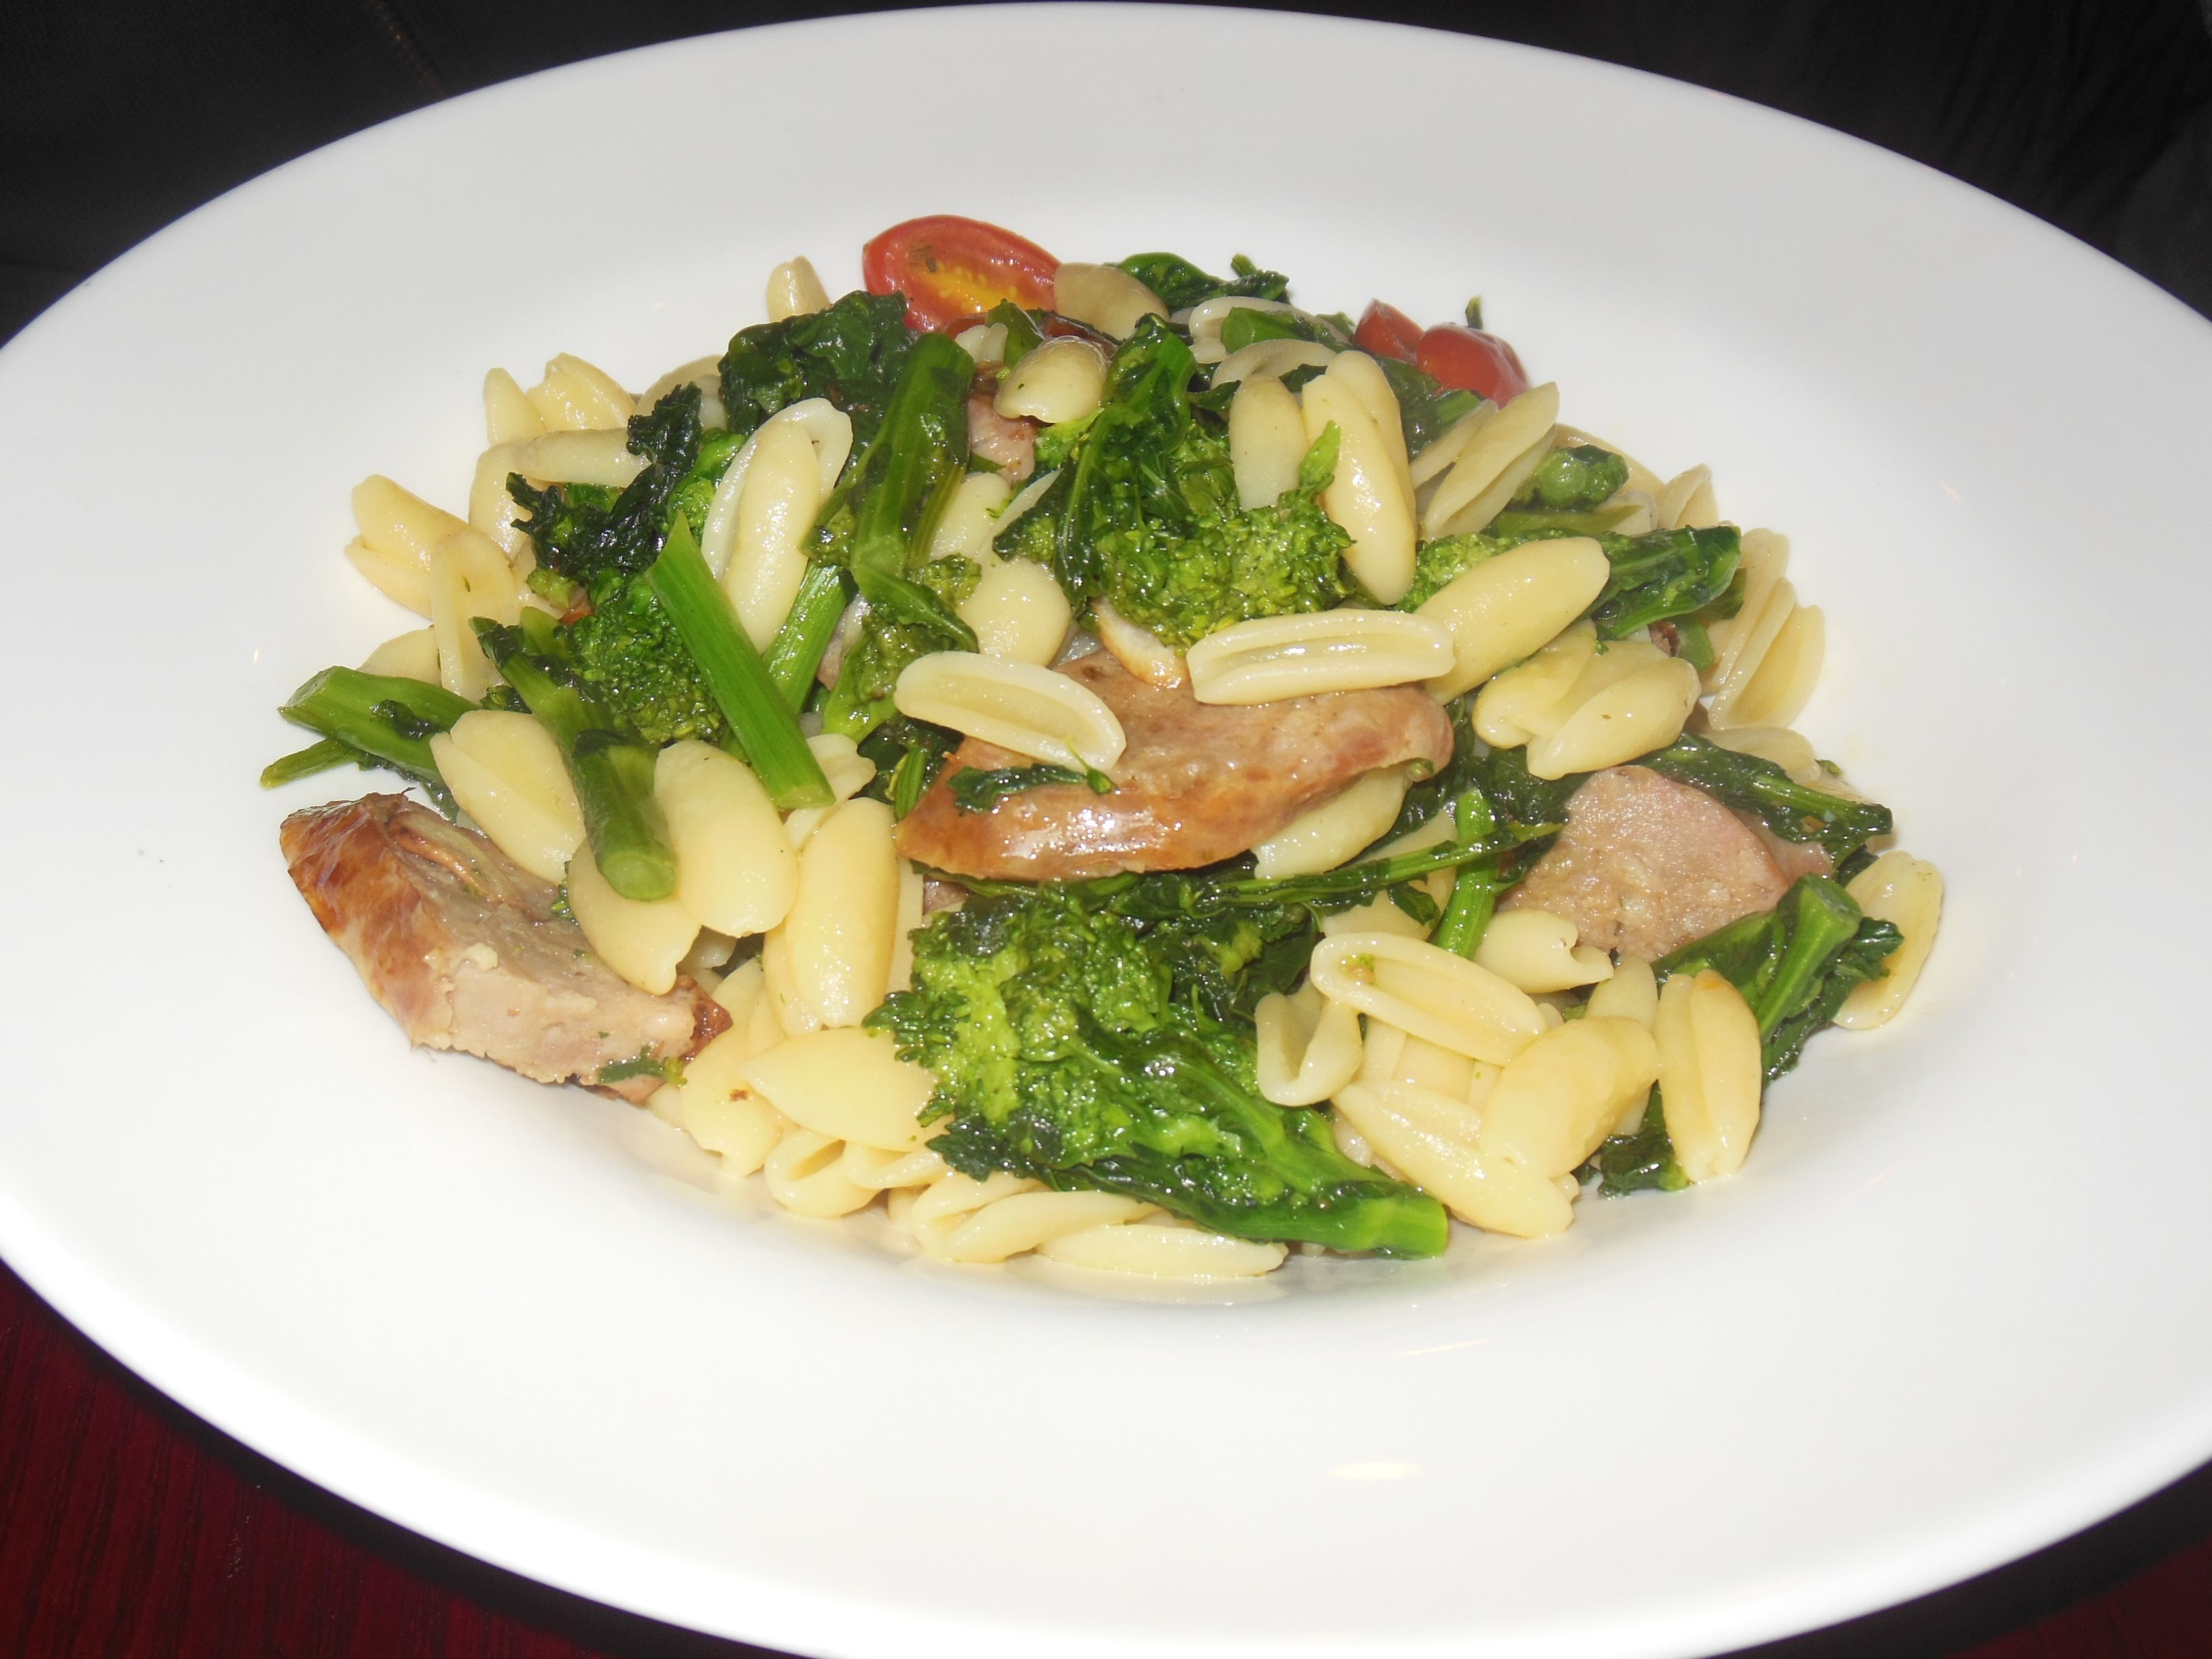 Sapori, Upper Montclair, NJ: Cavatelli with sweet Italian sausage and broccoli rabe. http://njmonthly.com/blogs/tablehopwithRosie/2014/1/8/restaurant-news.html#read_more